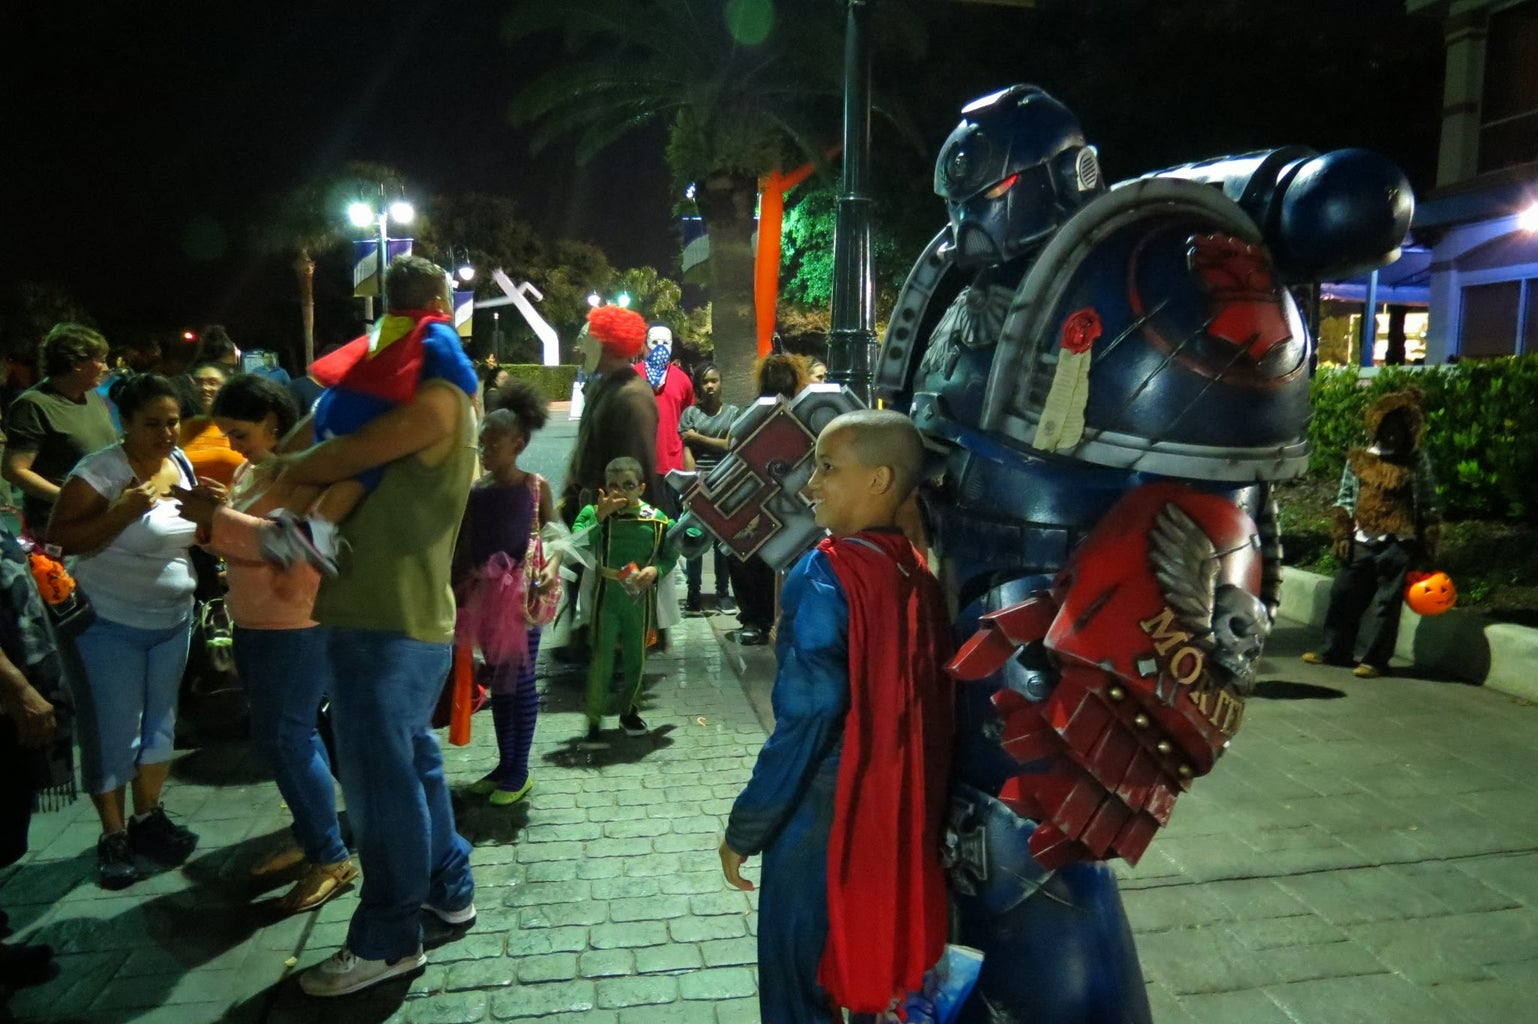 Go Out and Enjoy Your Amazing Space Marine Costume